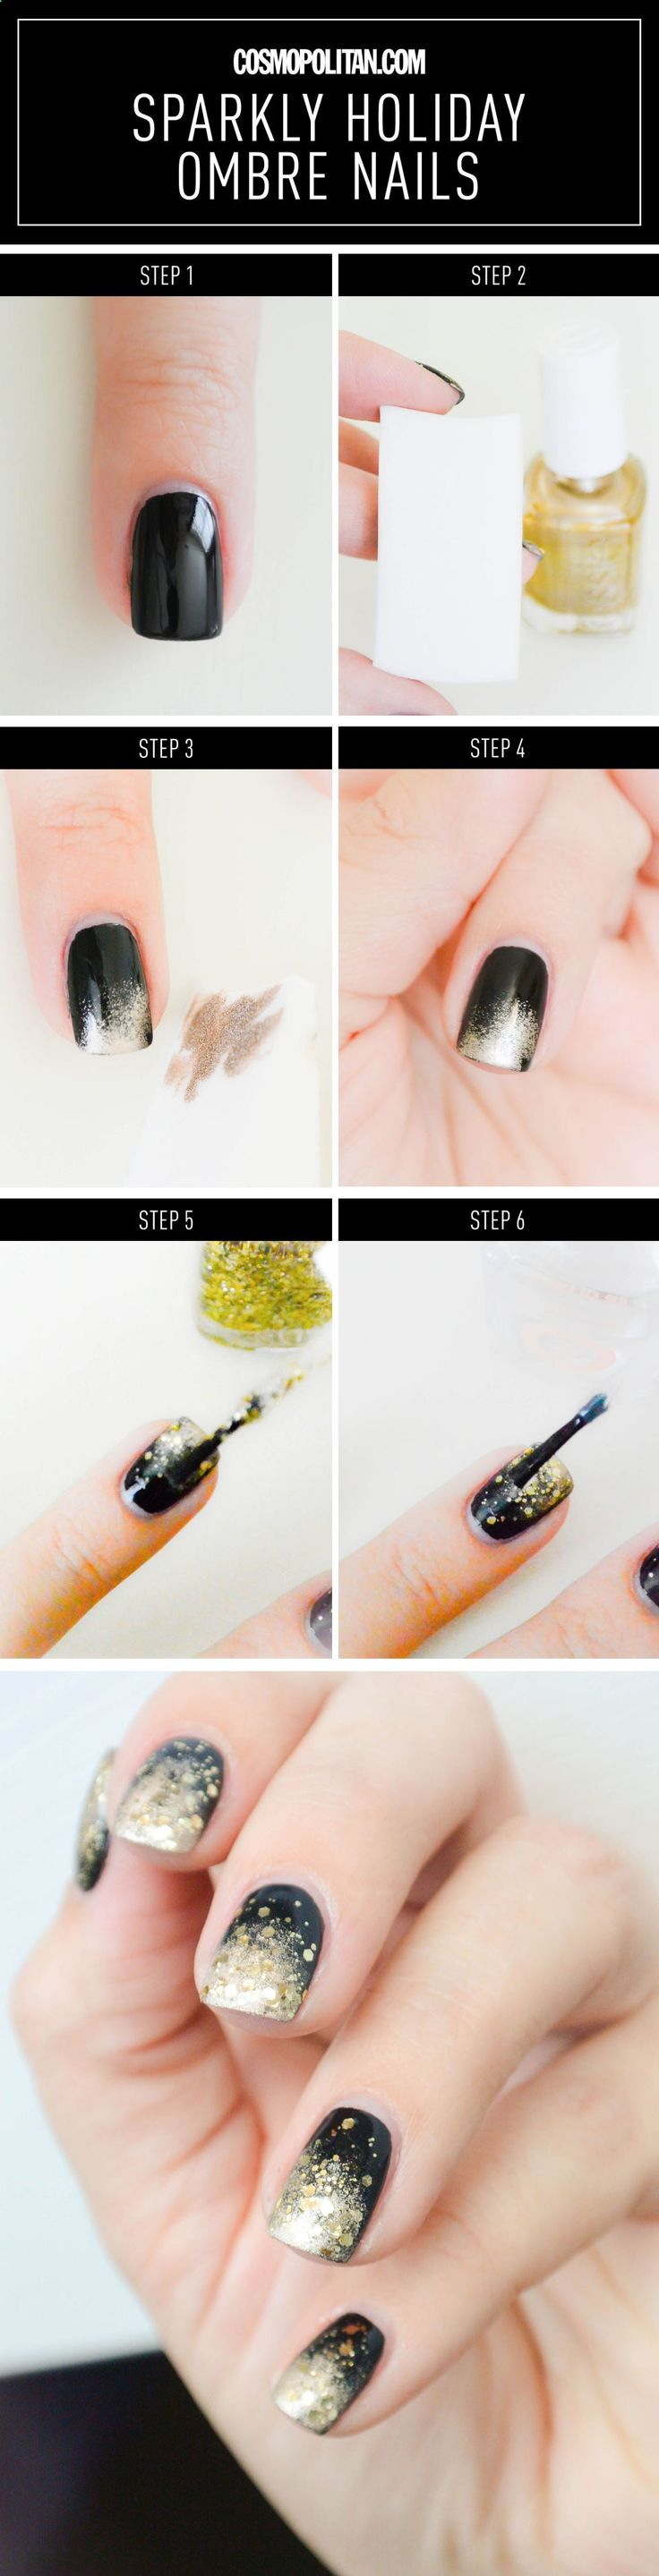 Sparkly New Years Eve Ombré Nails - Nail Tutorial 1. Basecoat, such as Essie Millionails 2. Black nail polish, such as Essie Licorice 3. Gold nail polish, such as Essie Good as Gold 4. Glitter polish, such as Essies Rock at the Top 5. Makeup sponge 6. Topcoat, such as Essie Good to Go